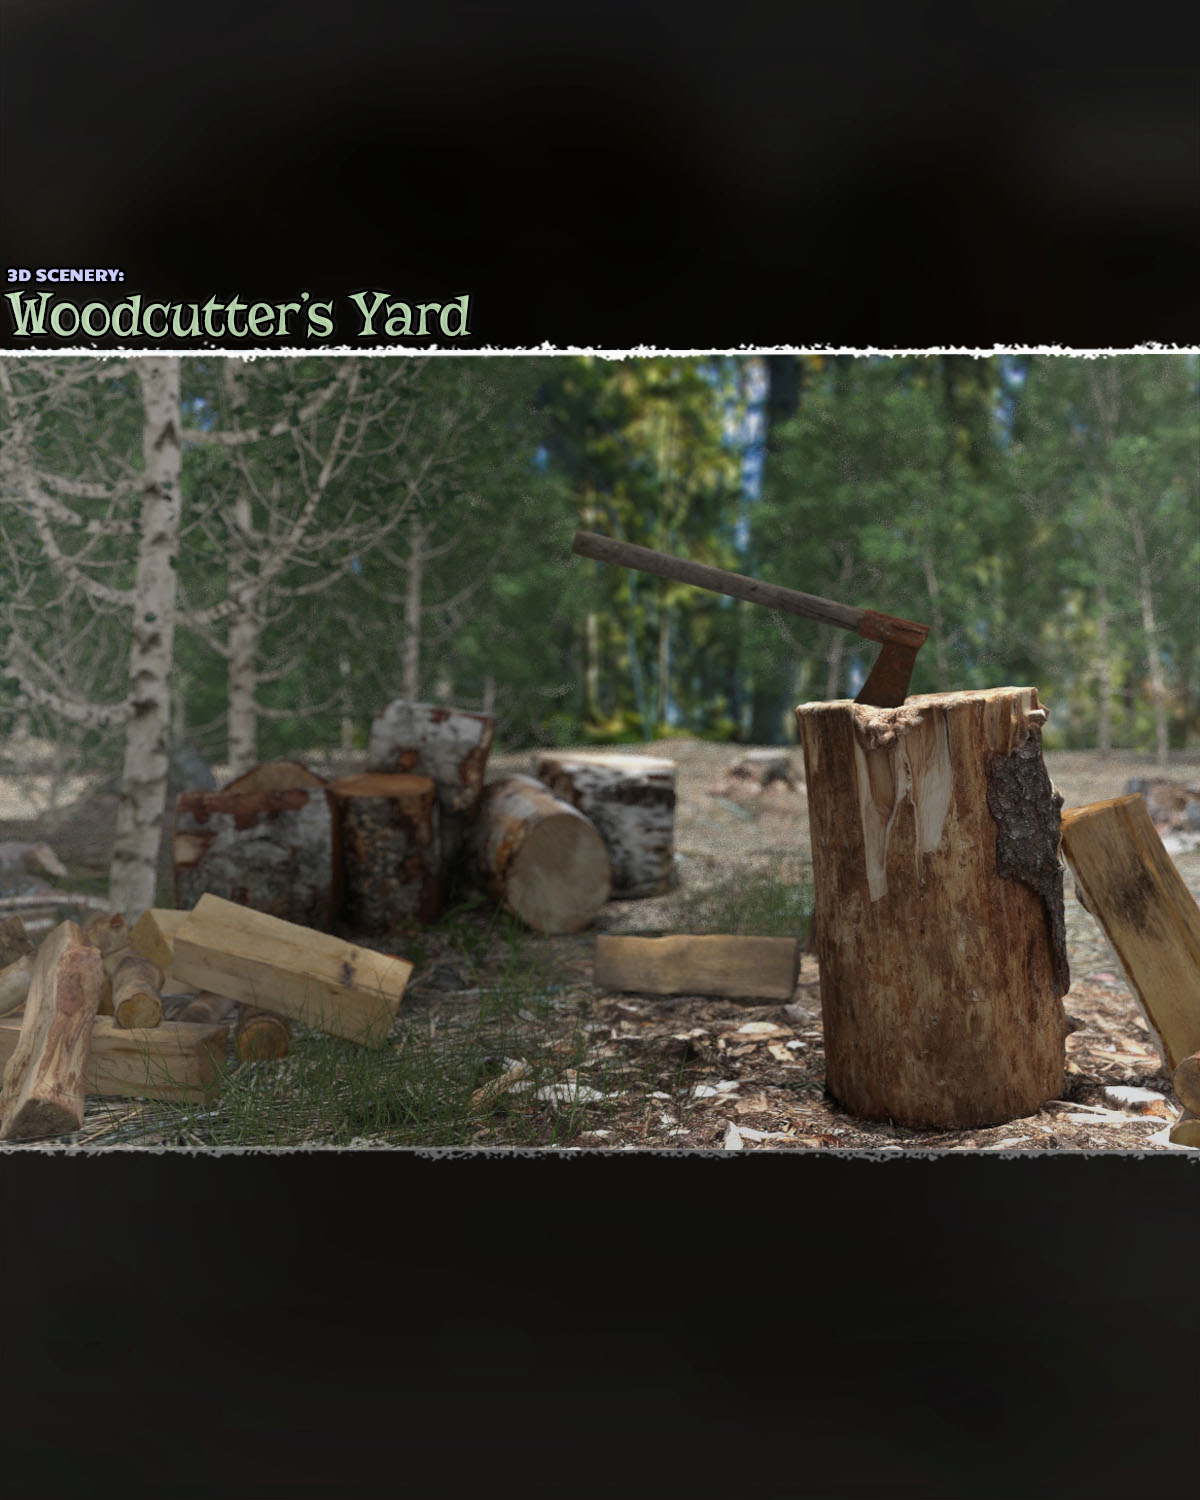 3D Scenery: Woodcutter's Yard by ShaaraMuse3D